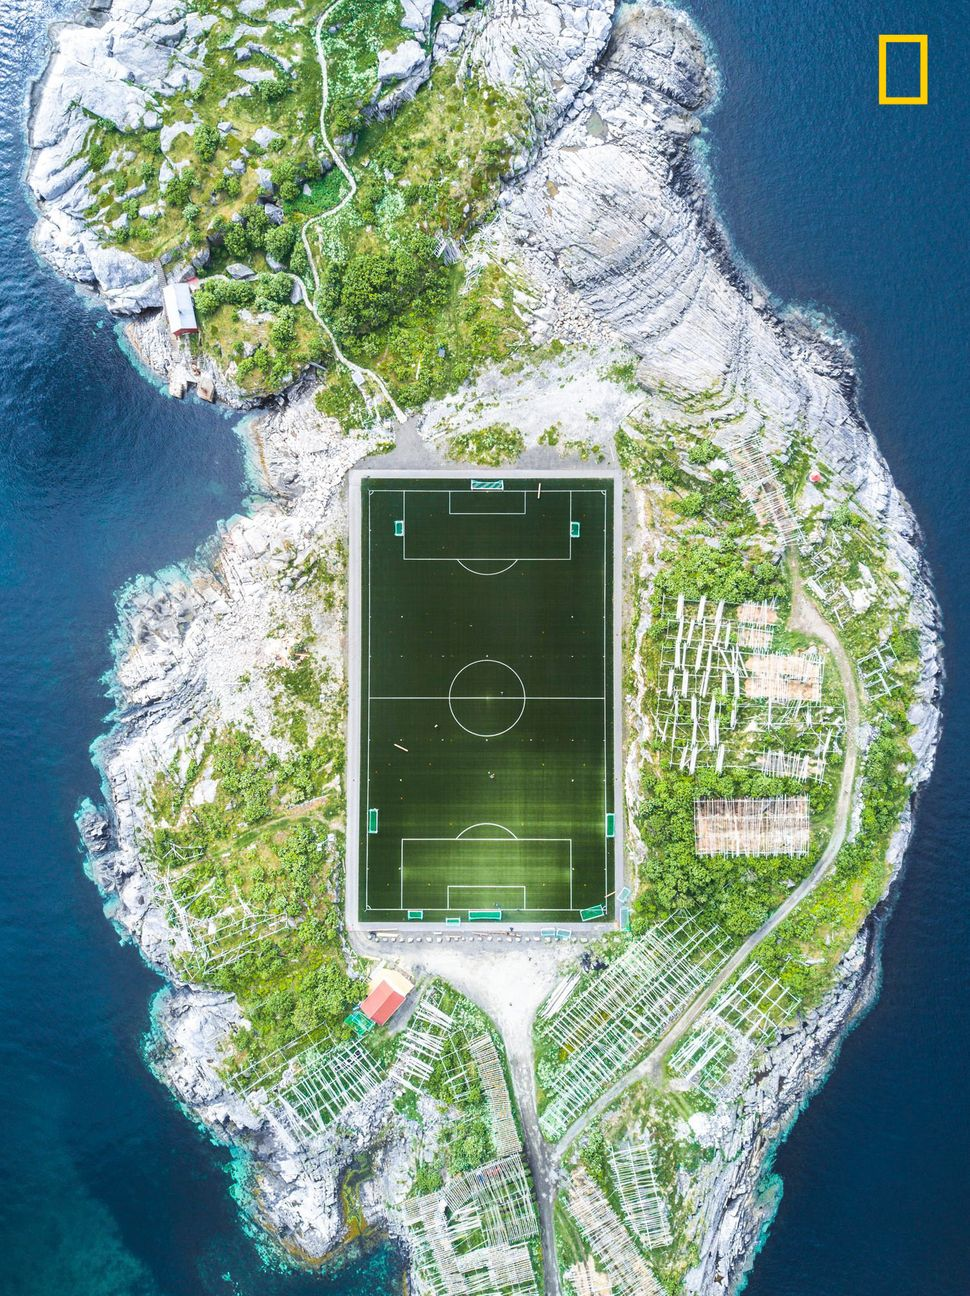 """This football field in Henningsvær in the Lofoten Islands is considered one of the most amazing fields in Europe, and"